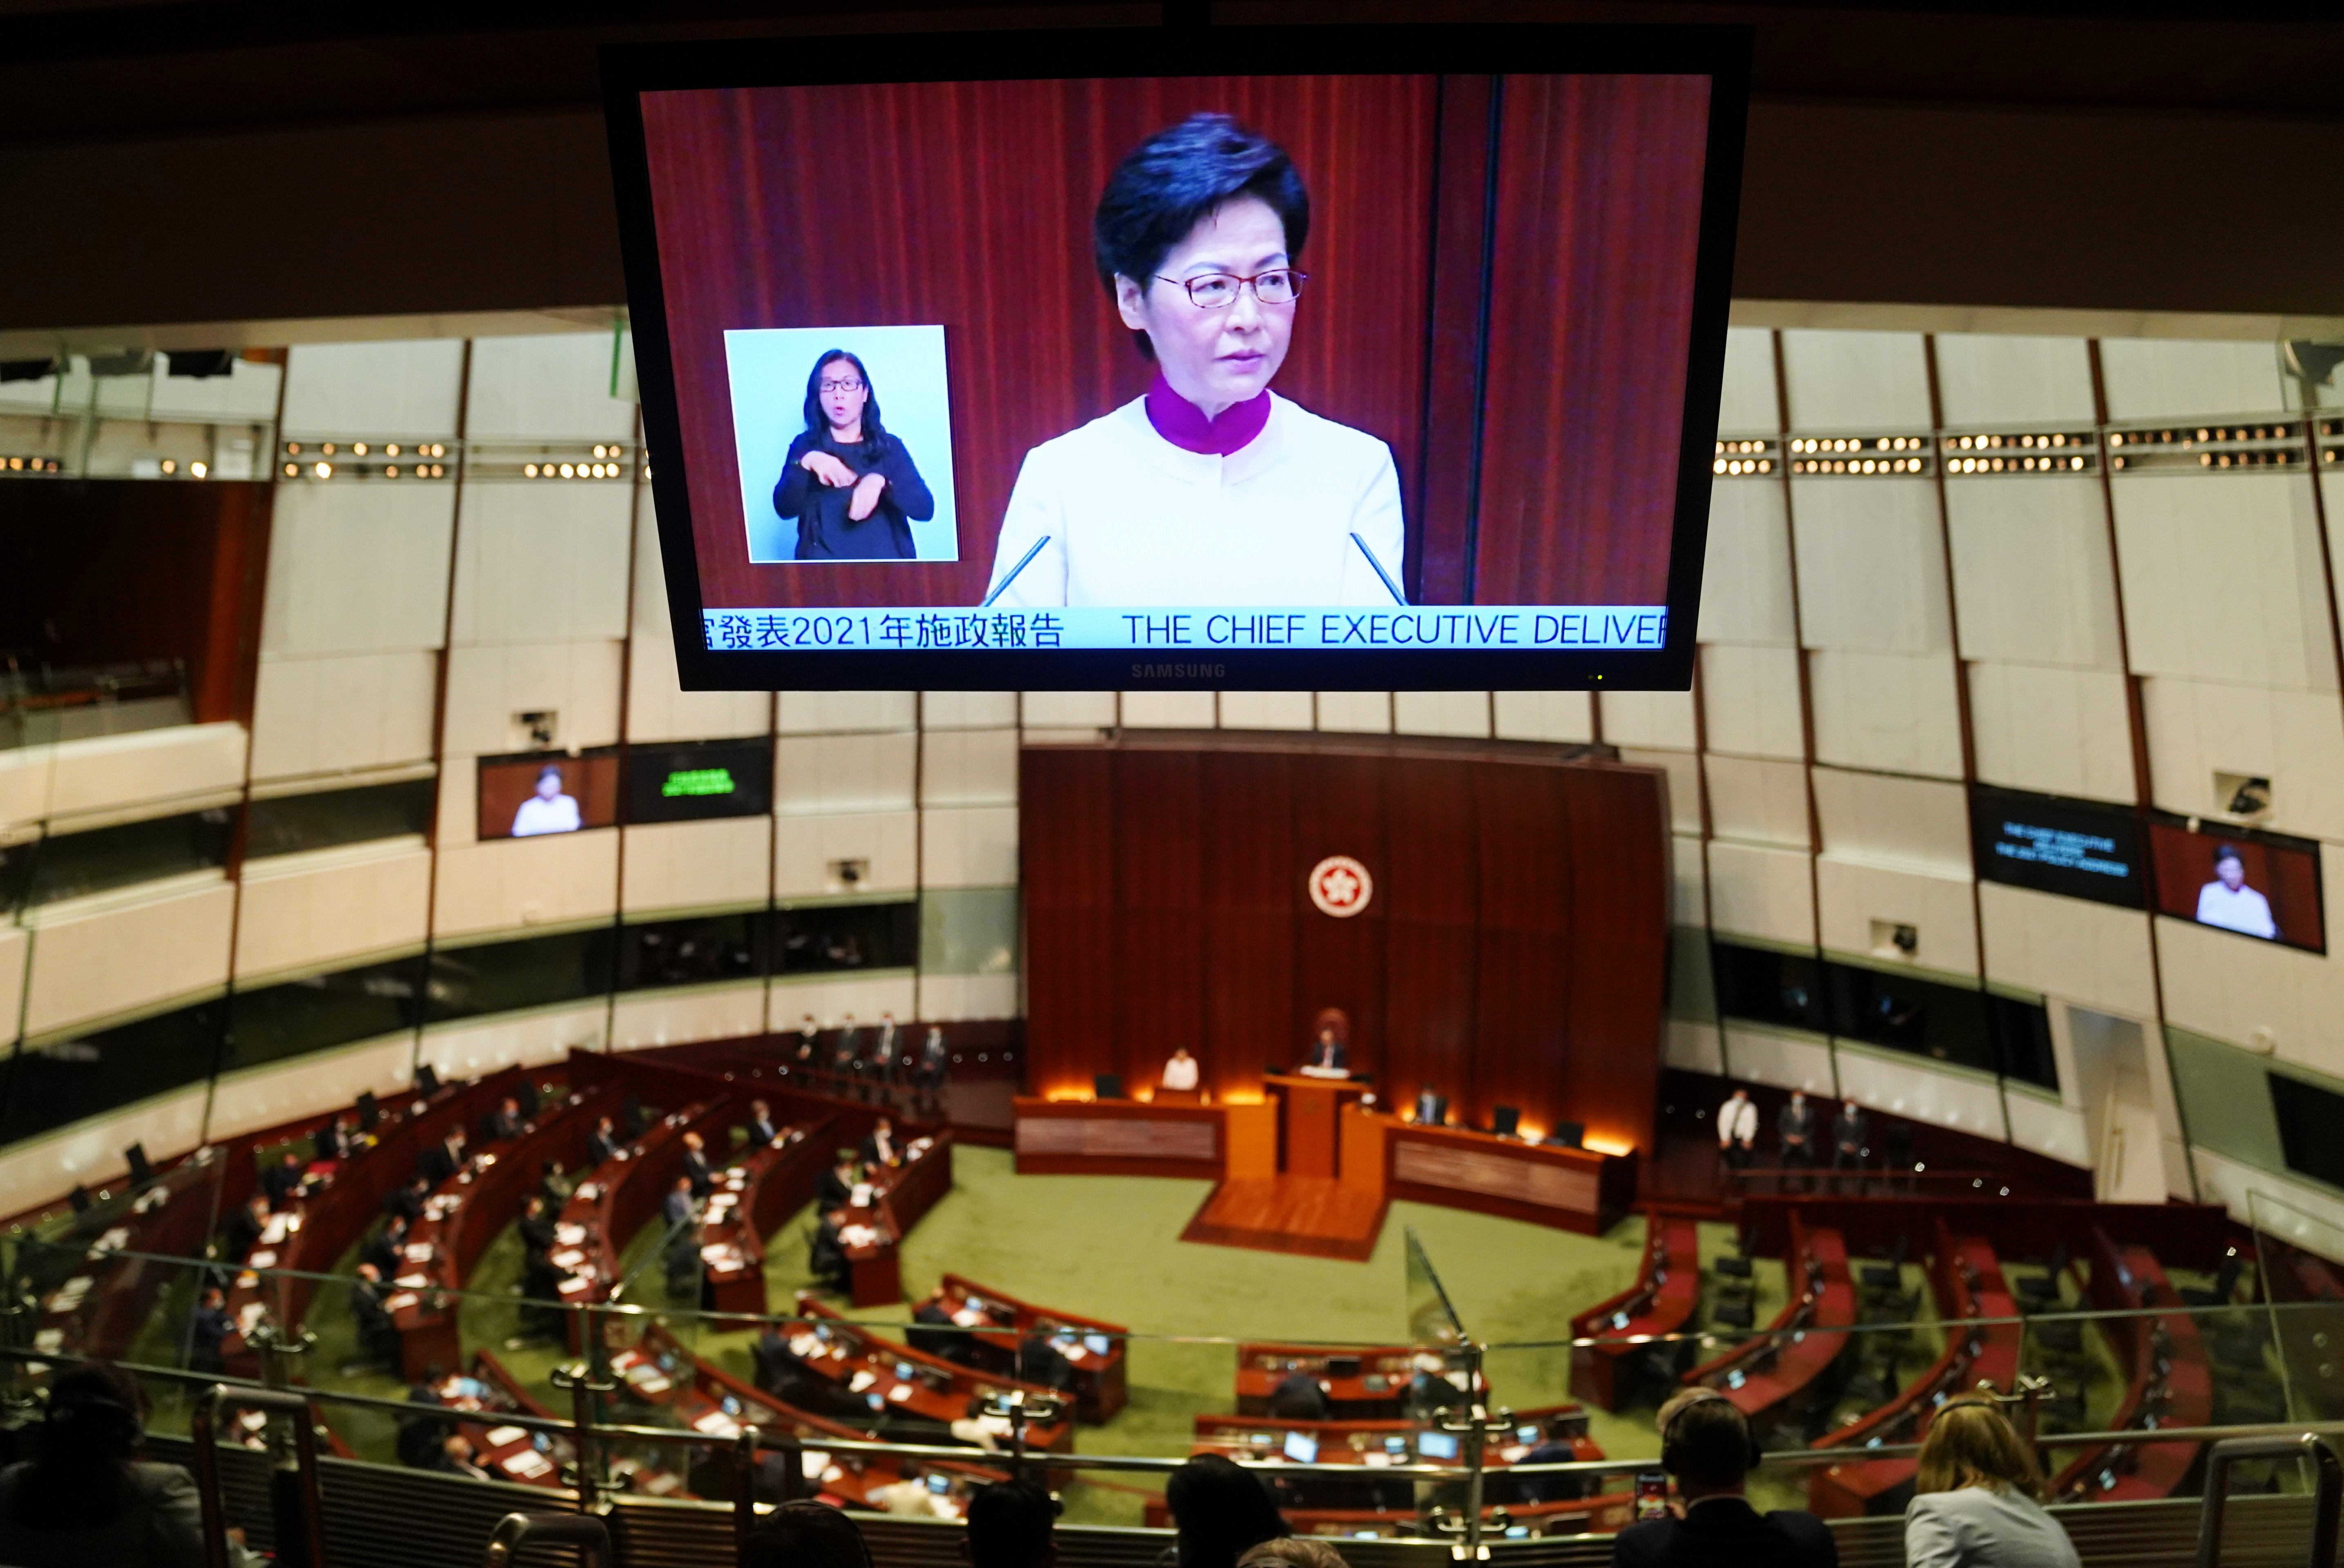 Hong Kong Chief Executive Carrie Lam is seen on a tv screen as she delivers her annual policy address at the Legislative Council in Hong Kong, China October 6, 2021. REUTERS/Lam Yik